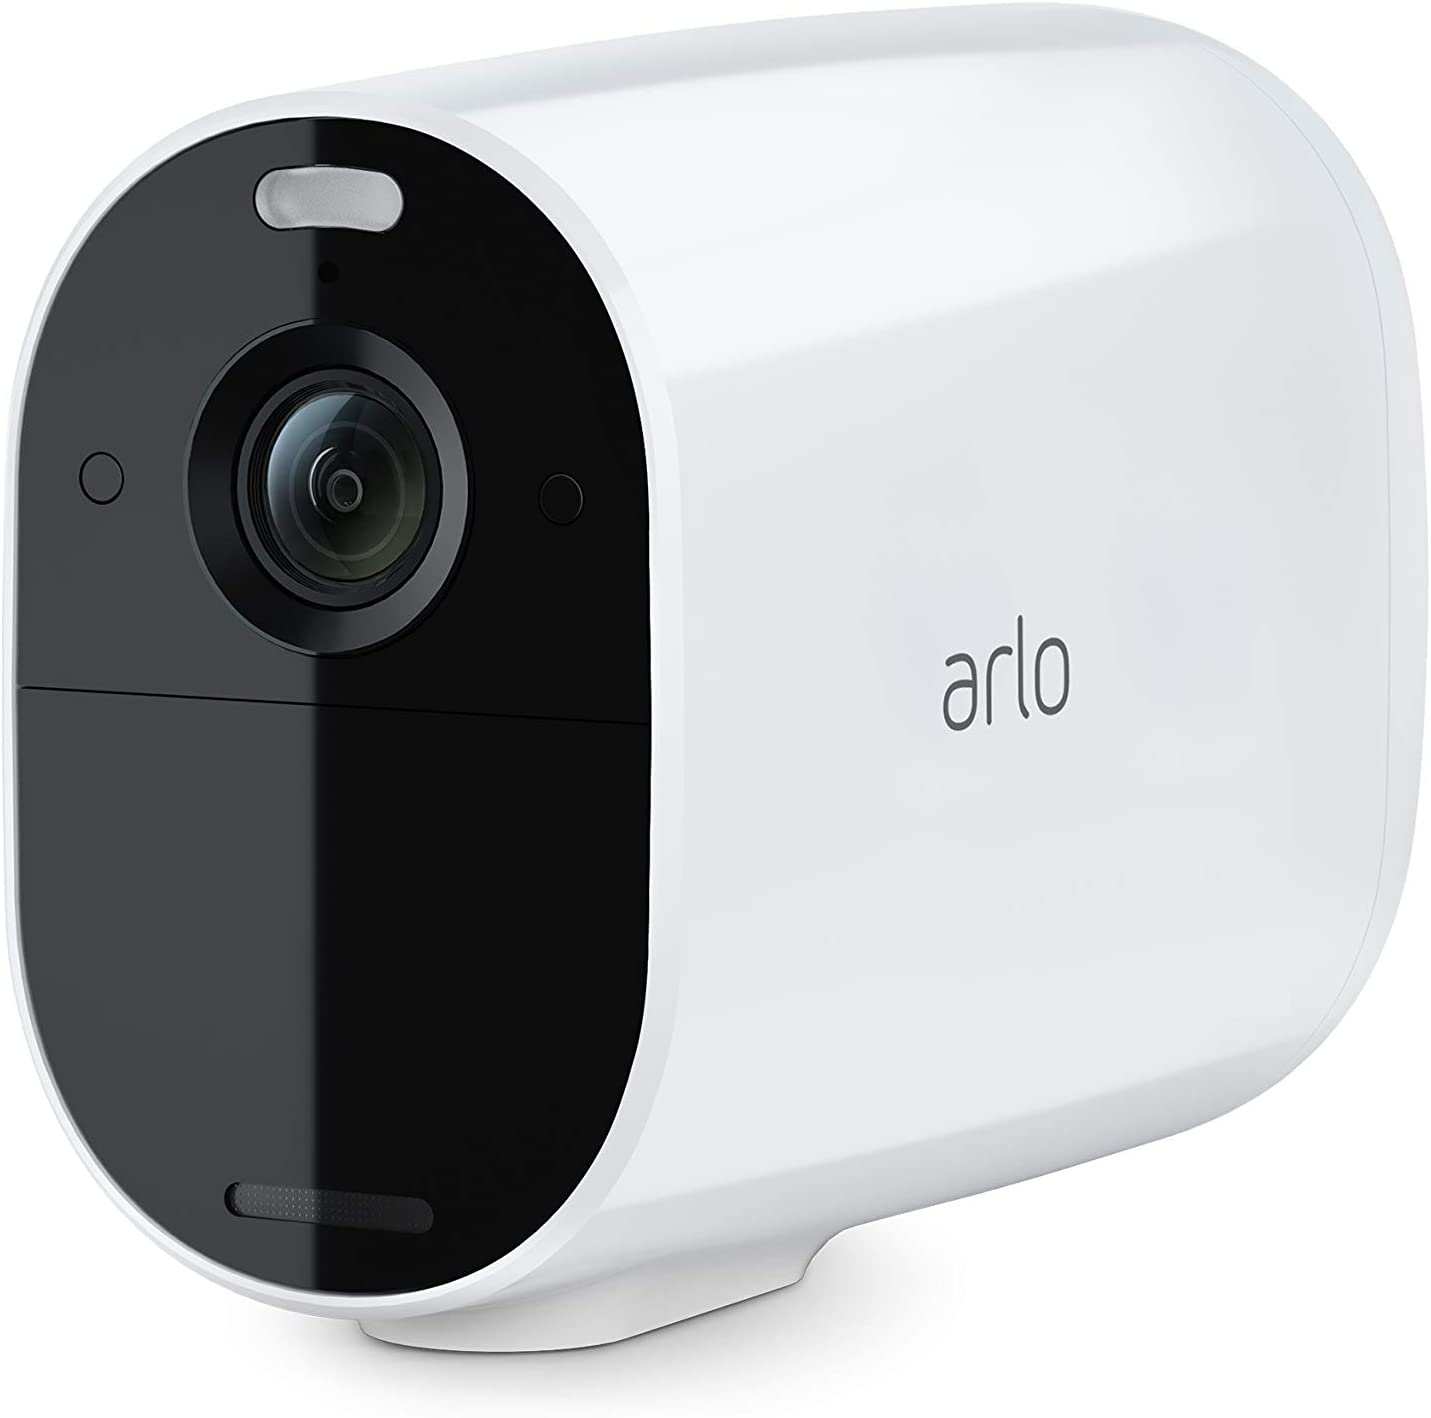 Arlo Essential XL Spotlight Camera | Wire-Free, 1080p Video | Color Night Vision, 2-Way Audio, 1 Year Battery Life, Motion Activated, Direct to Wi-Fi, No Hub Needed | Works with Alexa | White